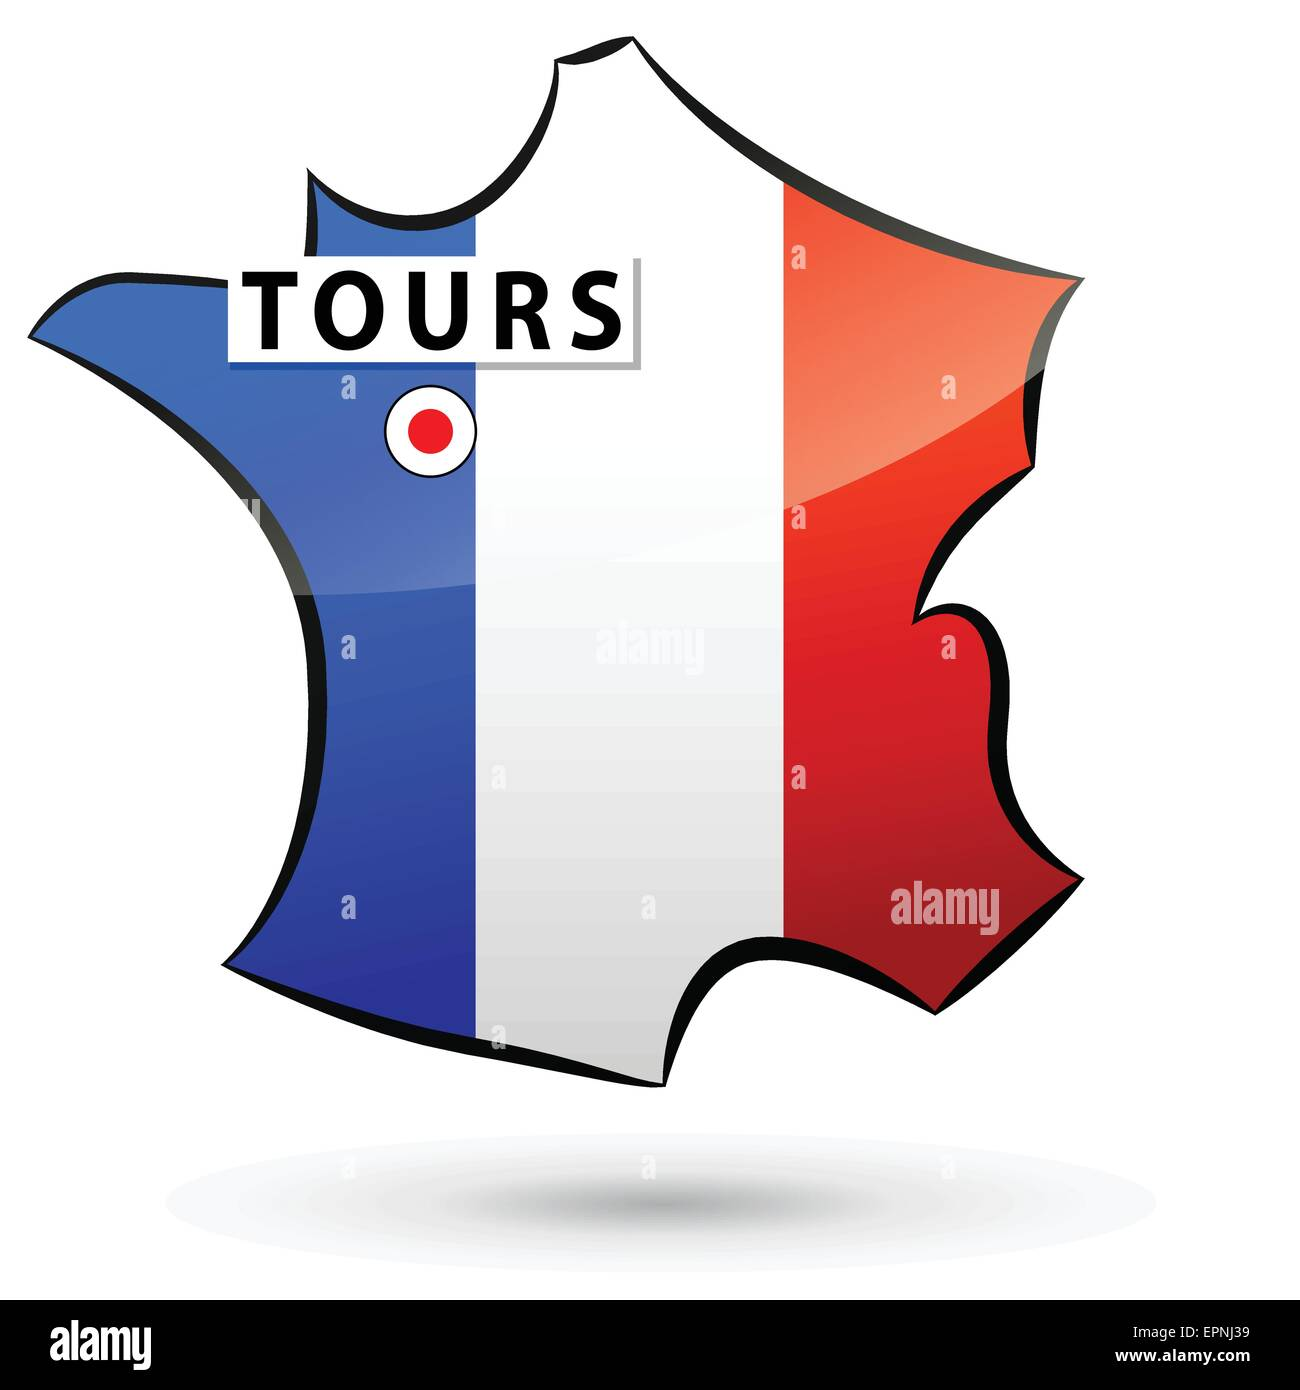 illustration of french map icon for tours - Stock Vector